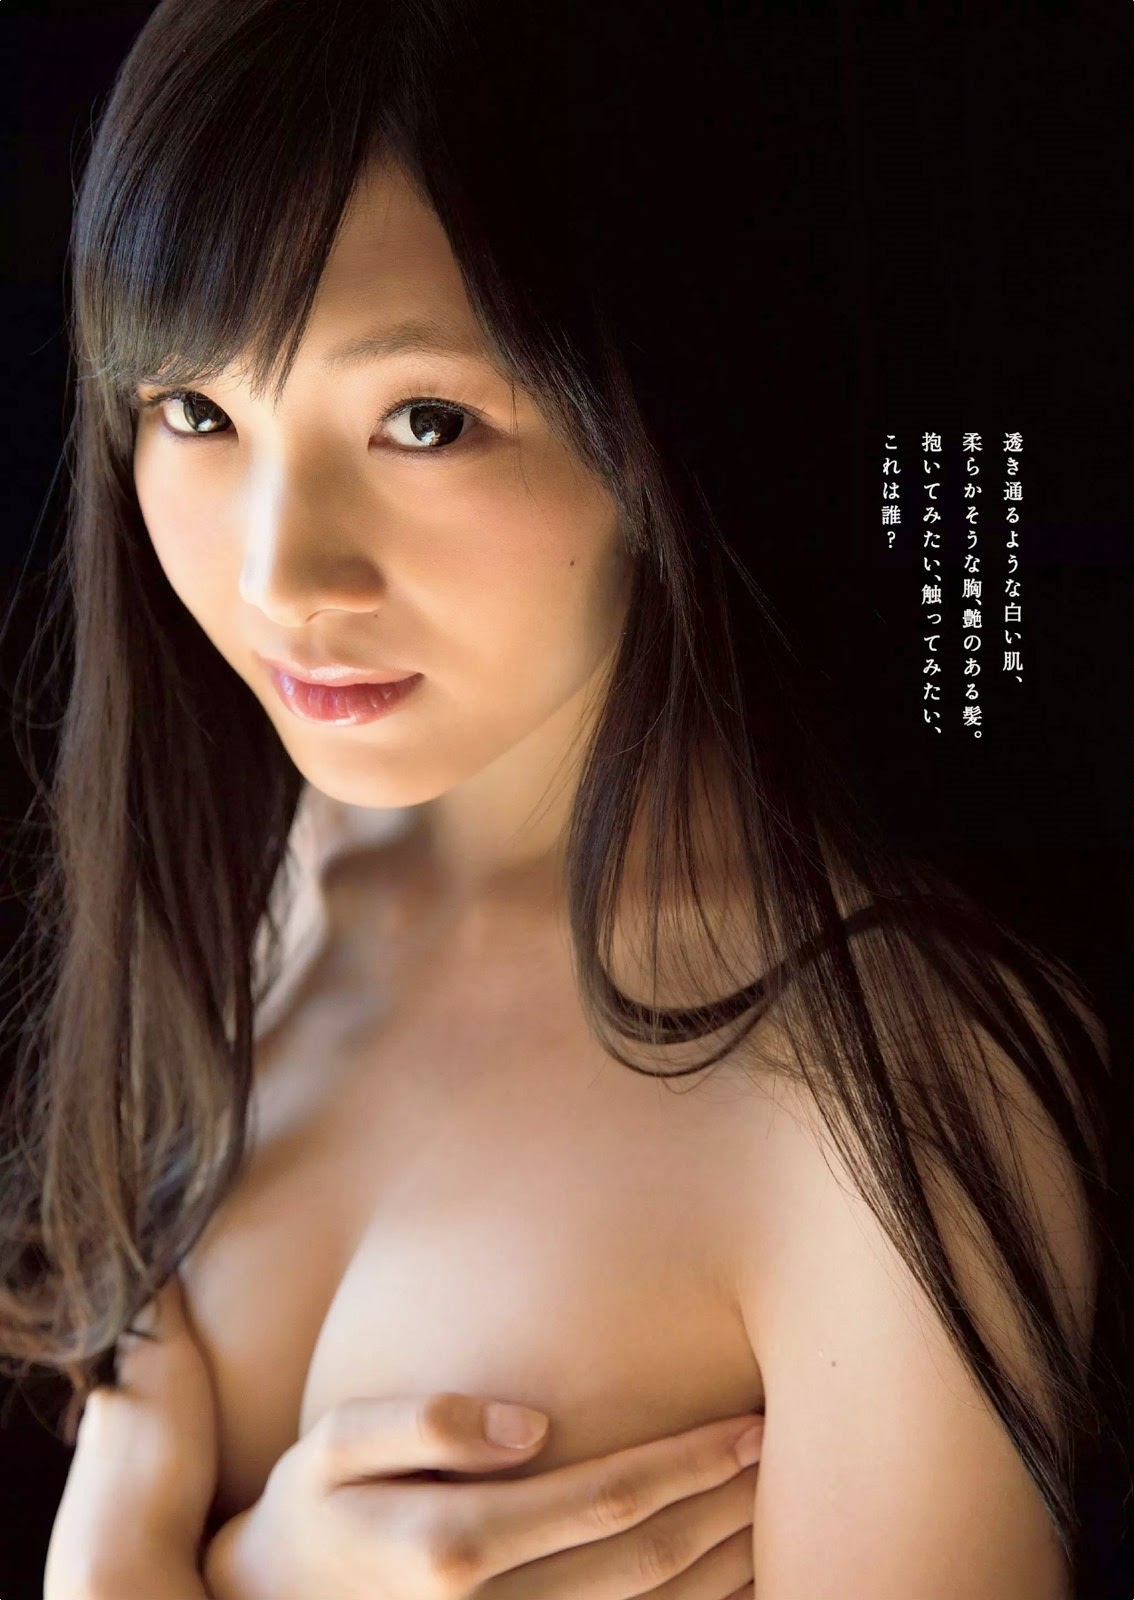 Takeuchi Ami たけうち亜美 Weekly Playboy April 2015 Photos 3